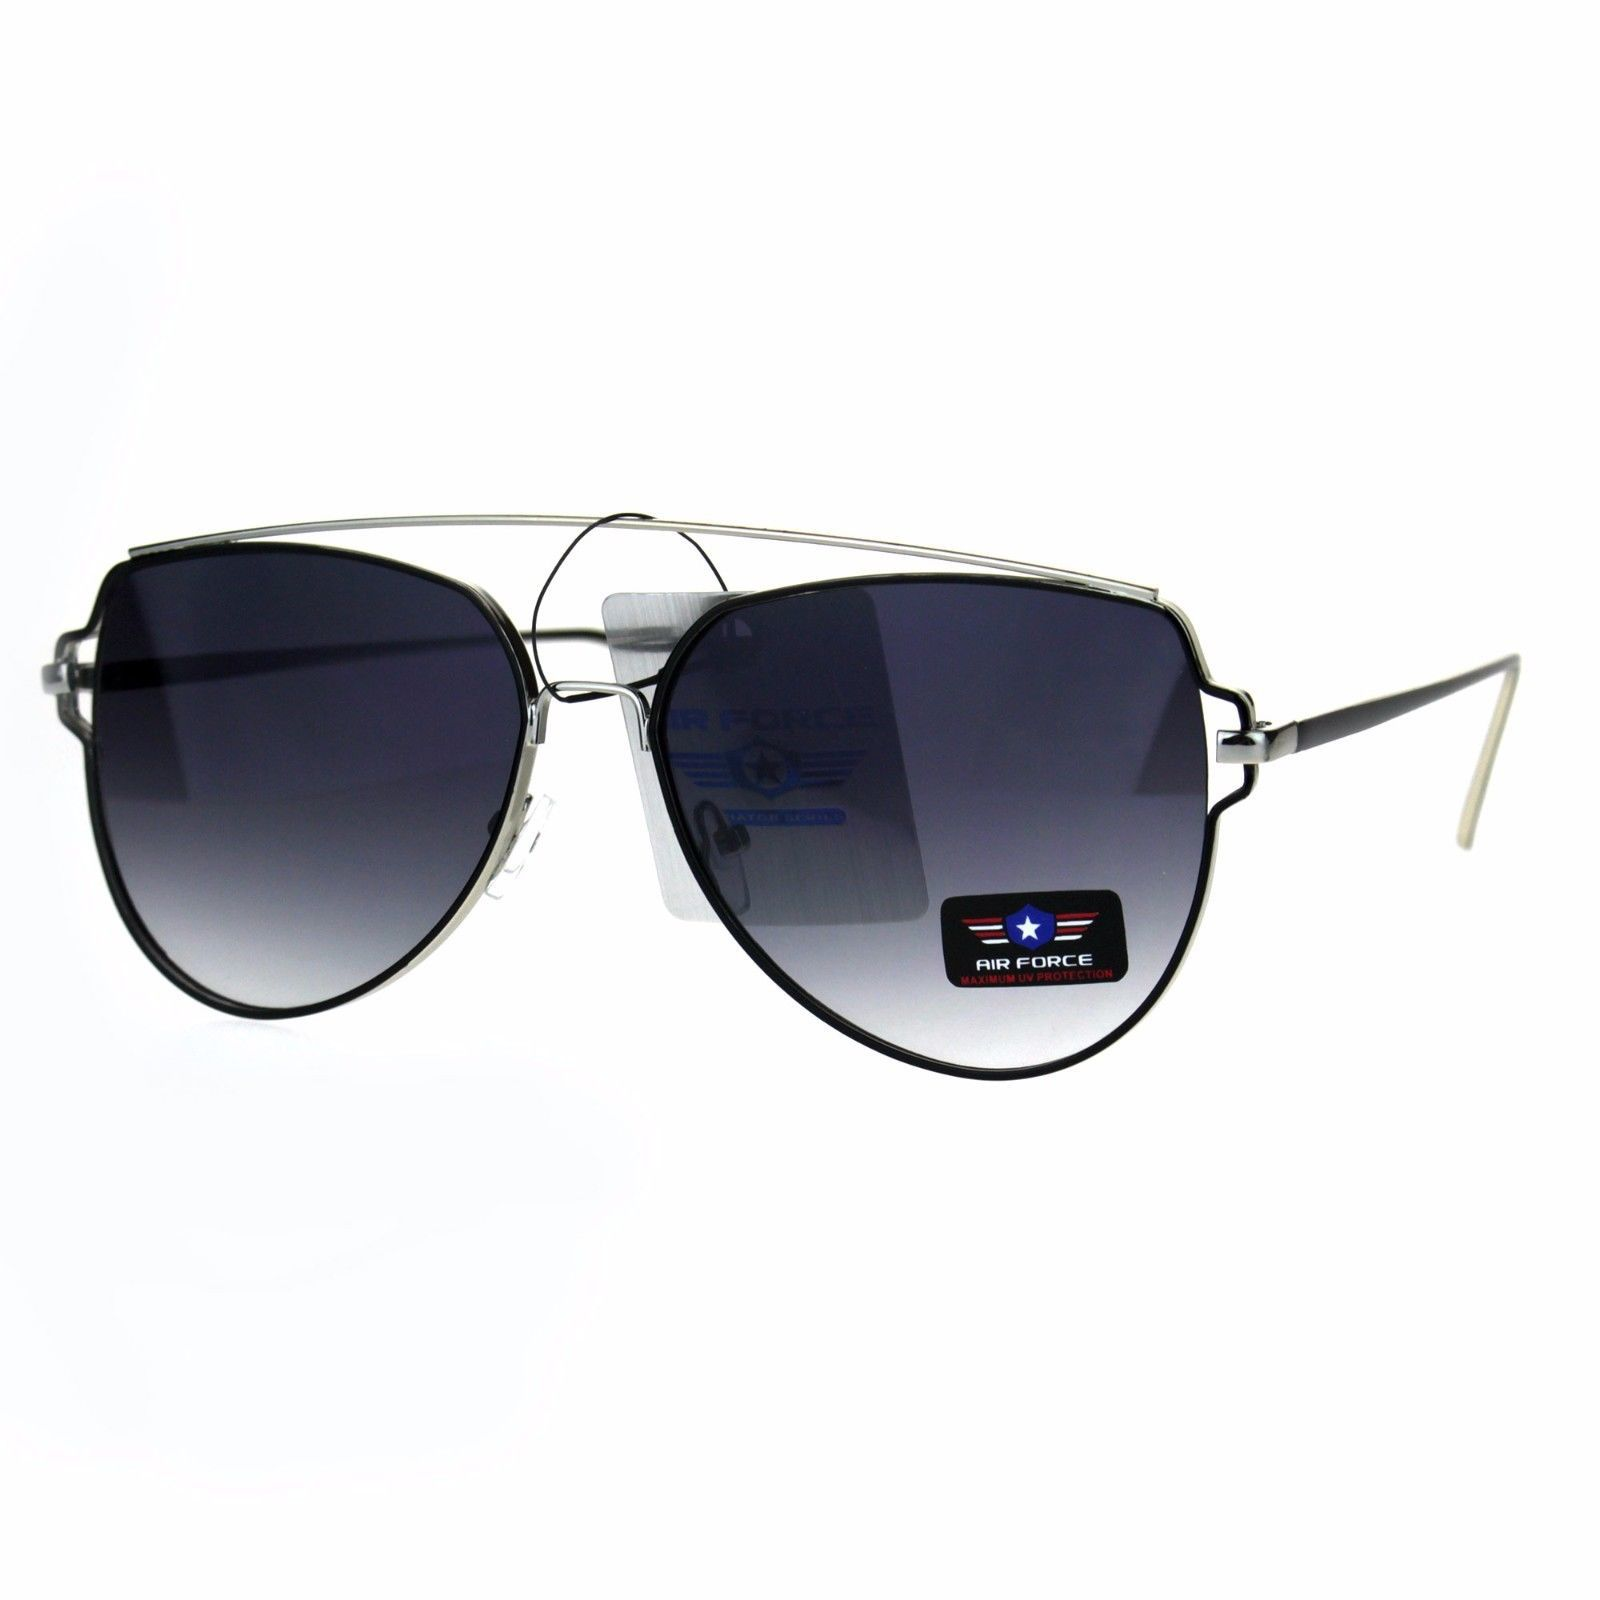 e51b5d31aa9 ... Air Force Flat Top Bar Squared Retro Pilots Metal Rim Sunglasses ...